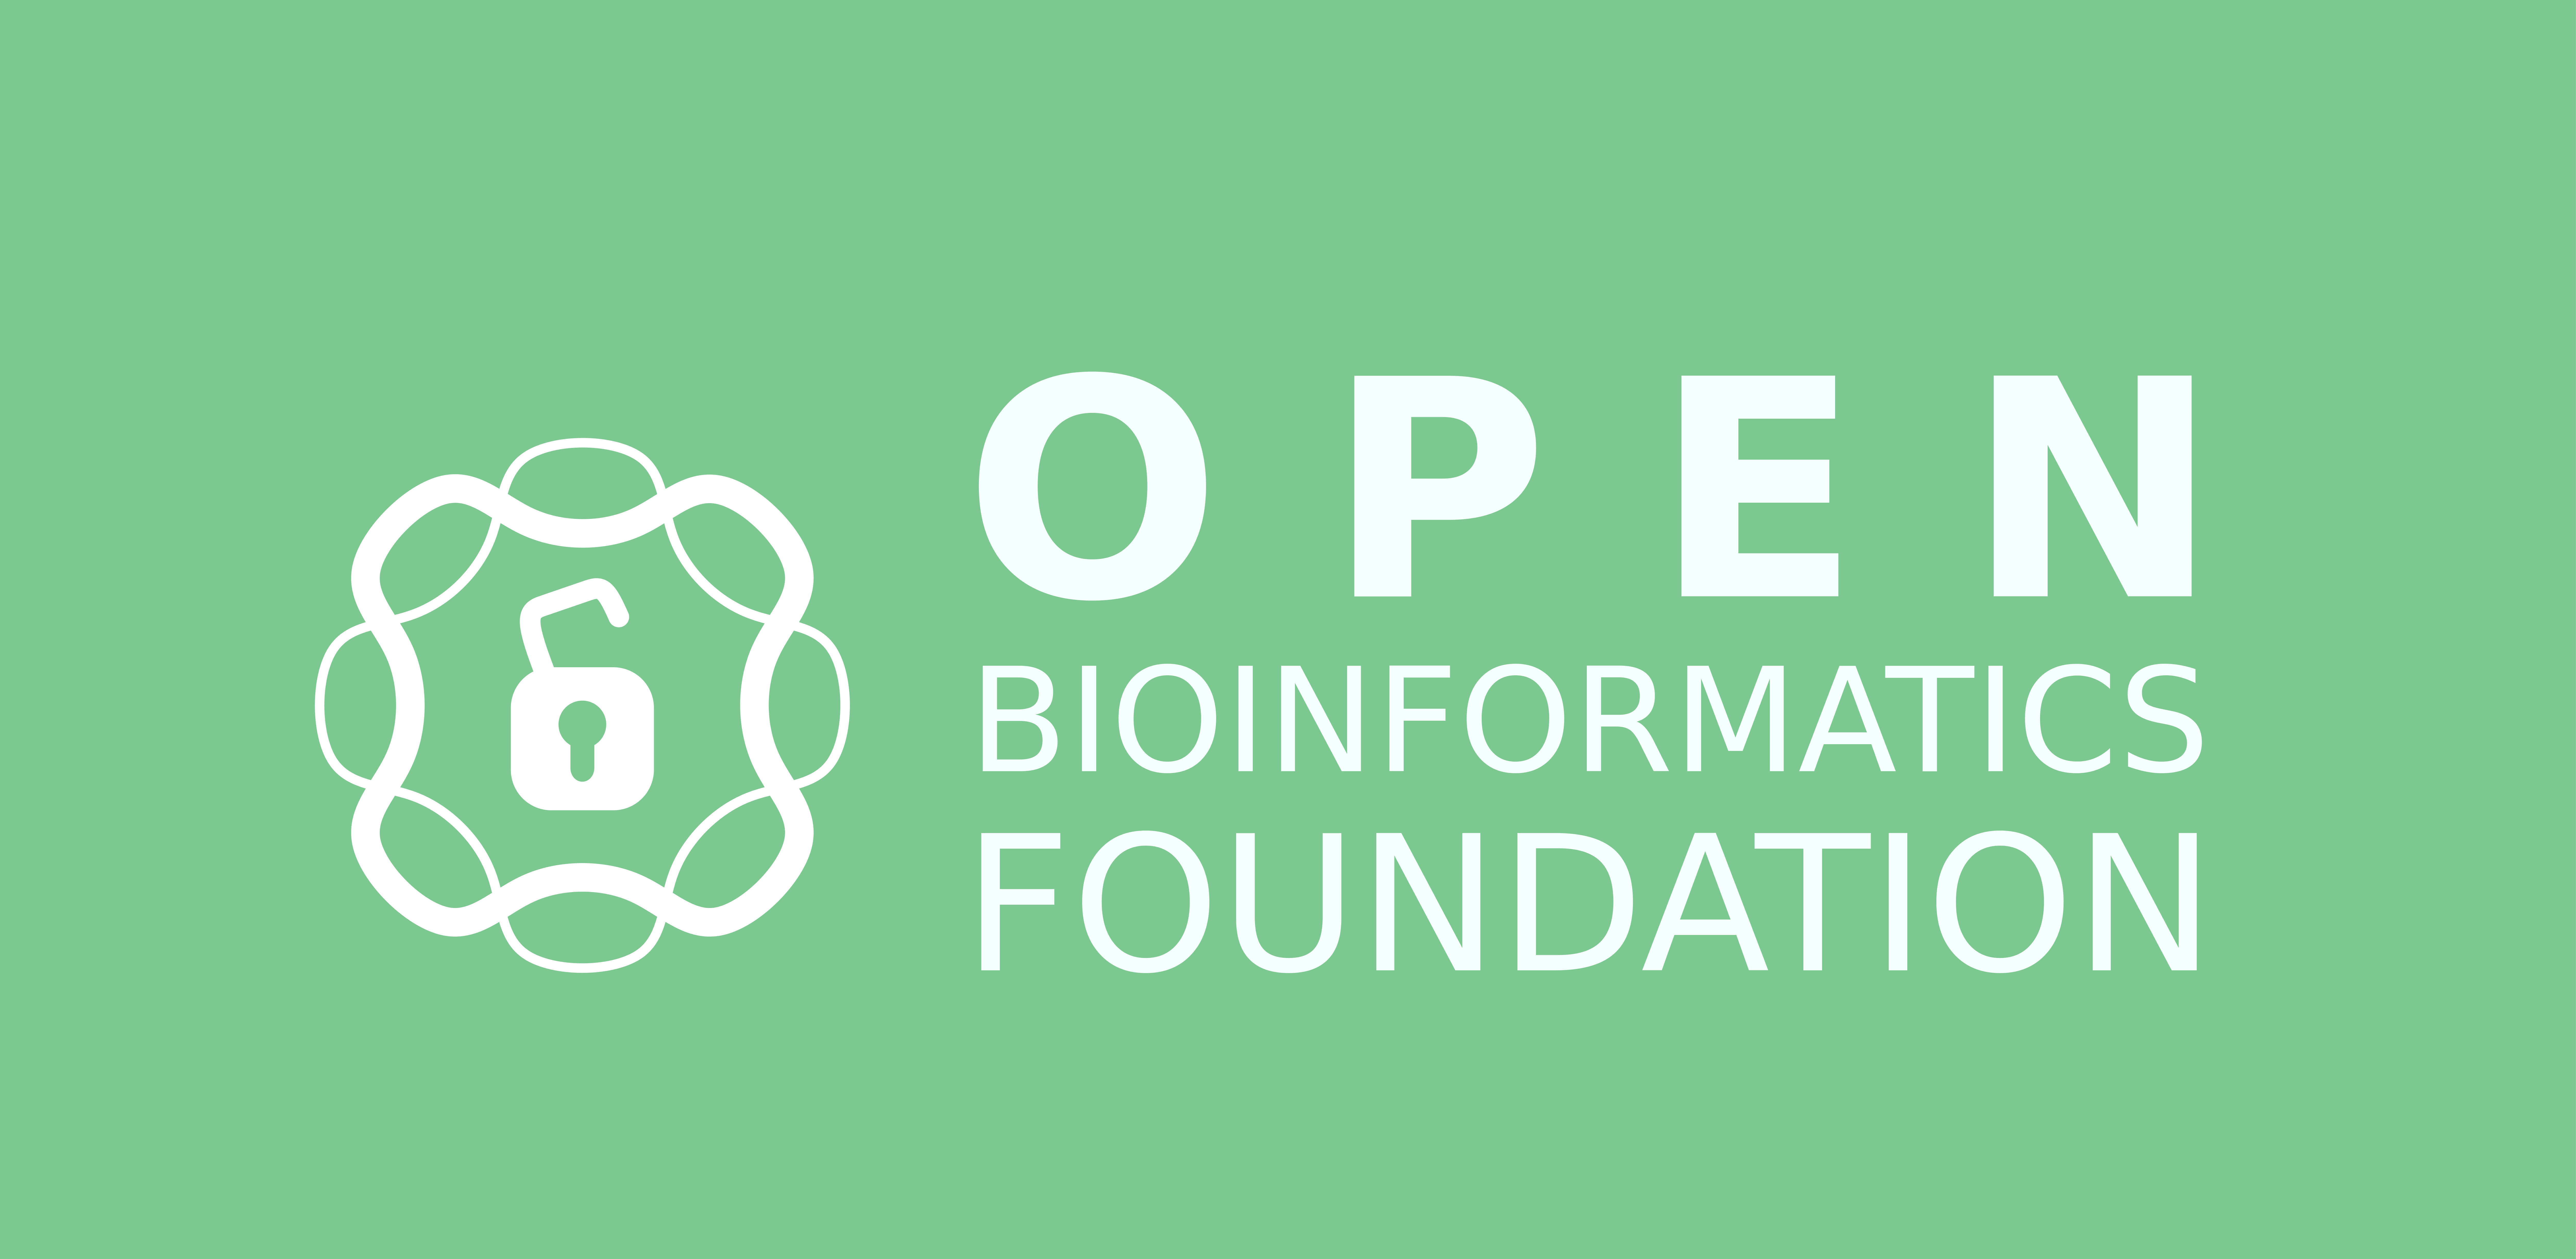 obf_logo_text_green